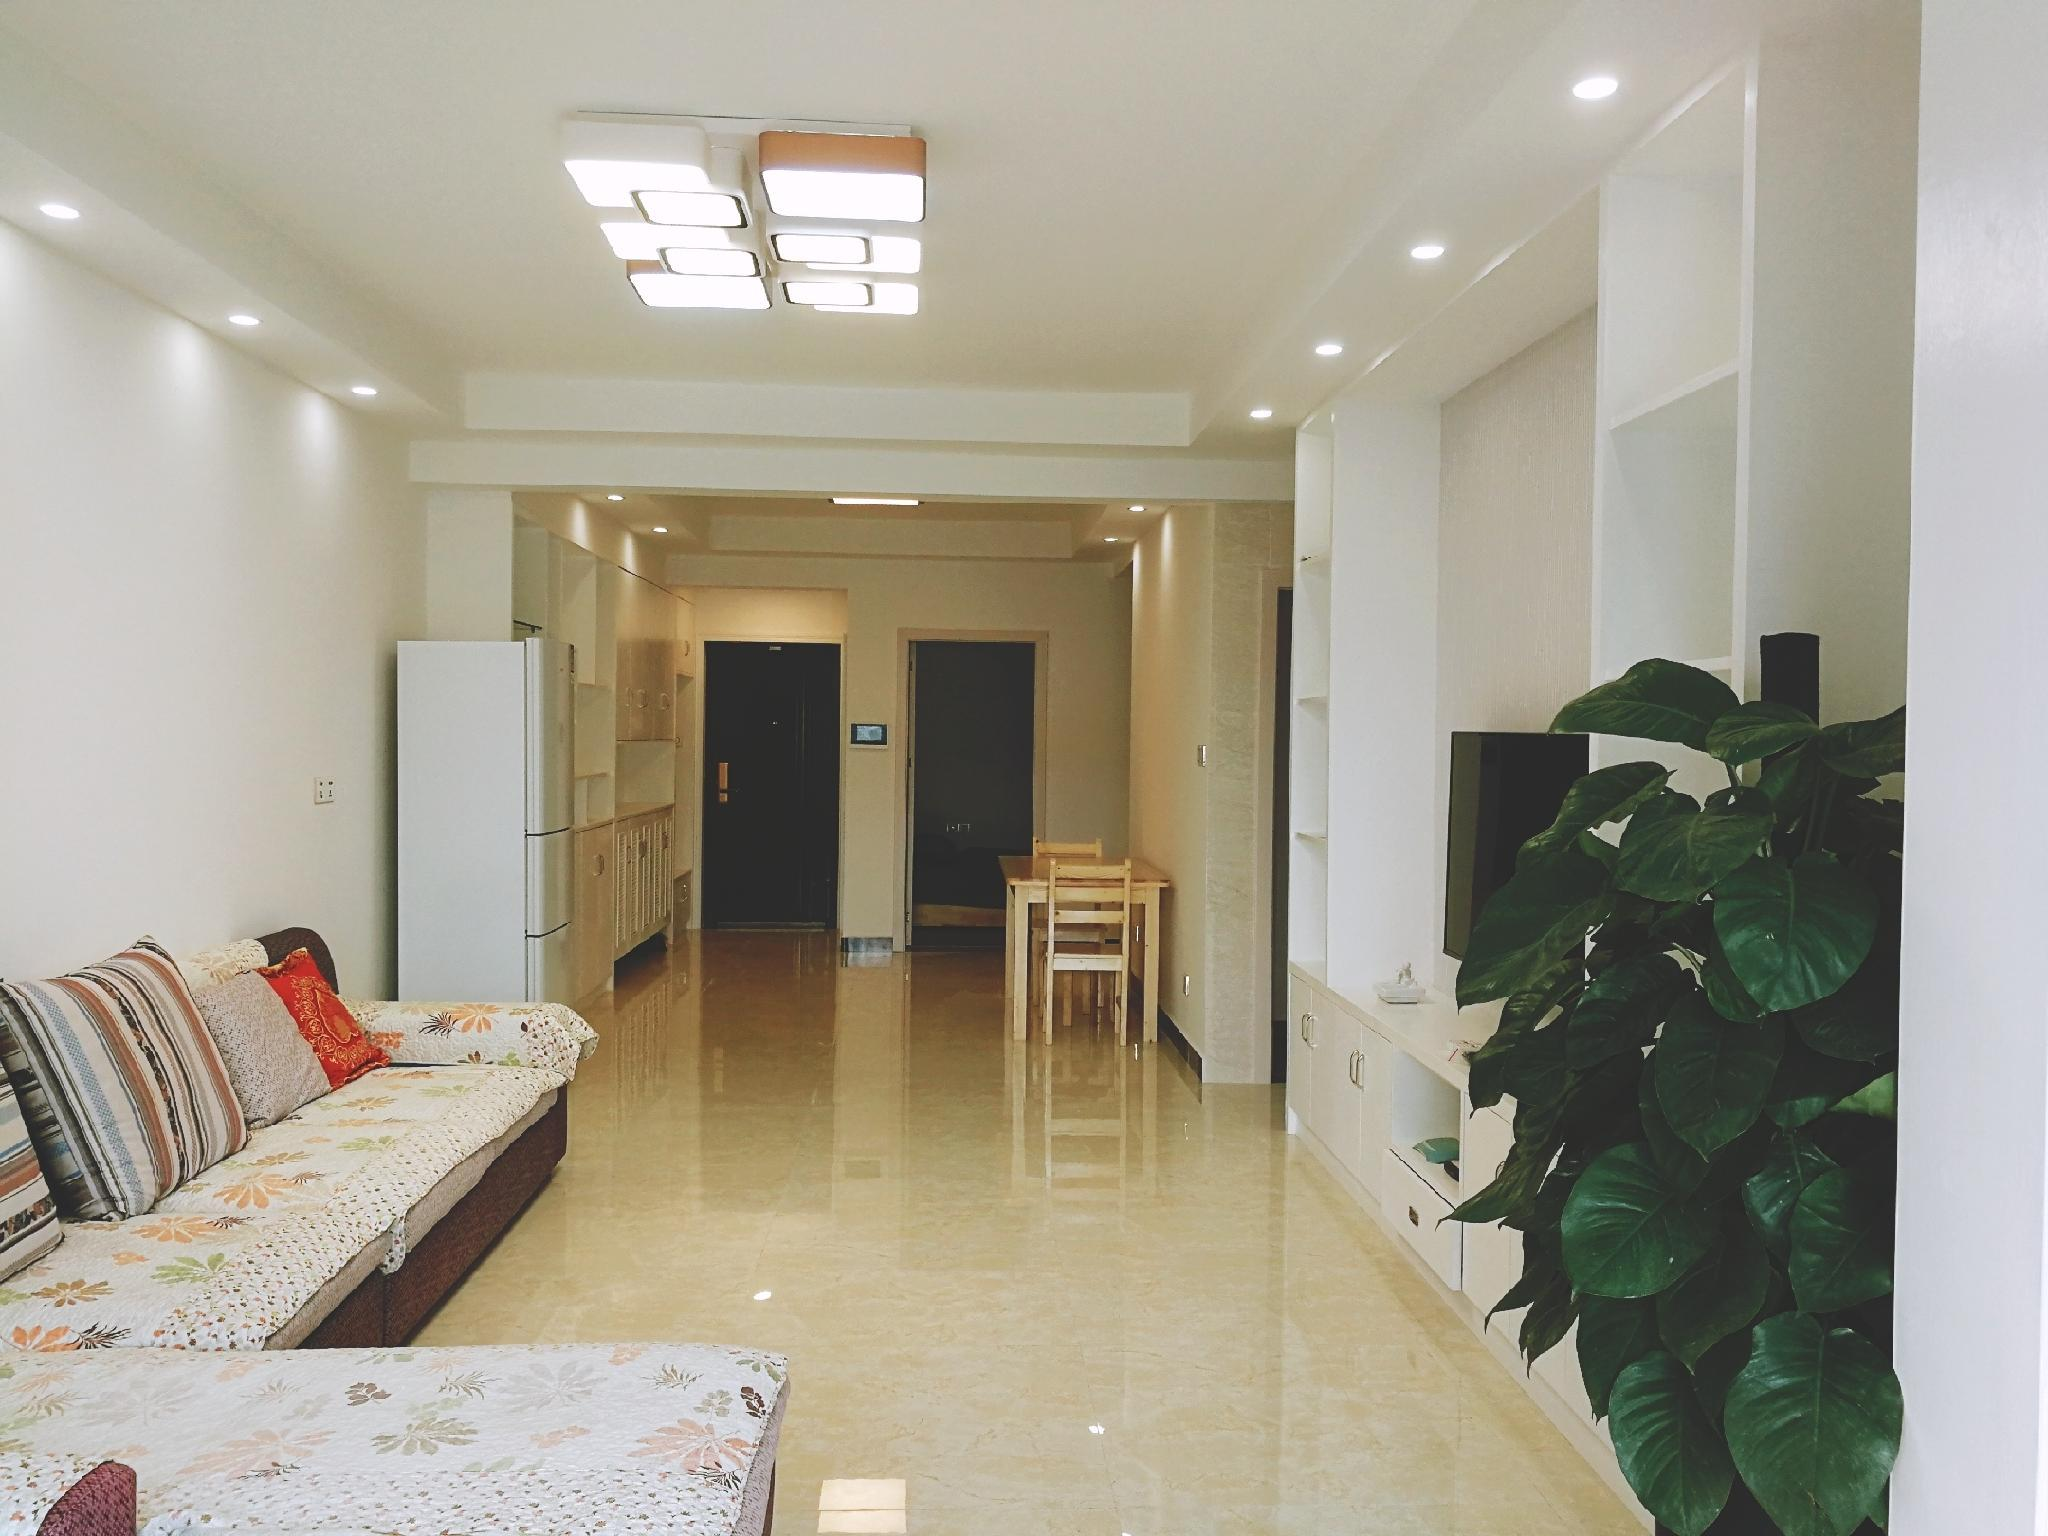 City Center Homestay Safe And Fashionable